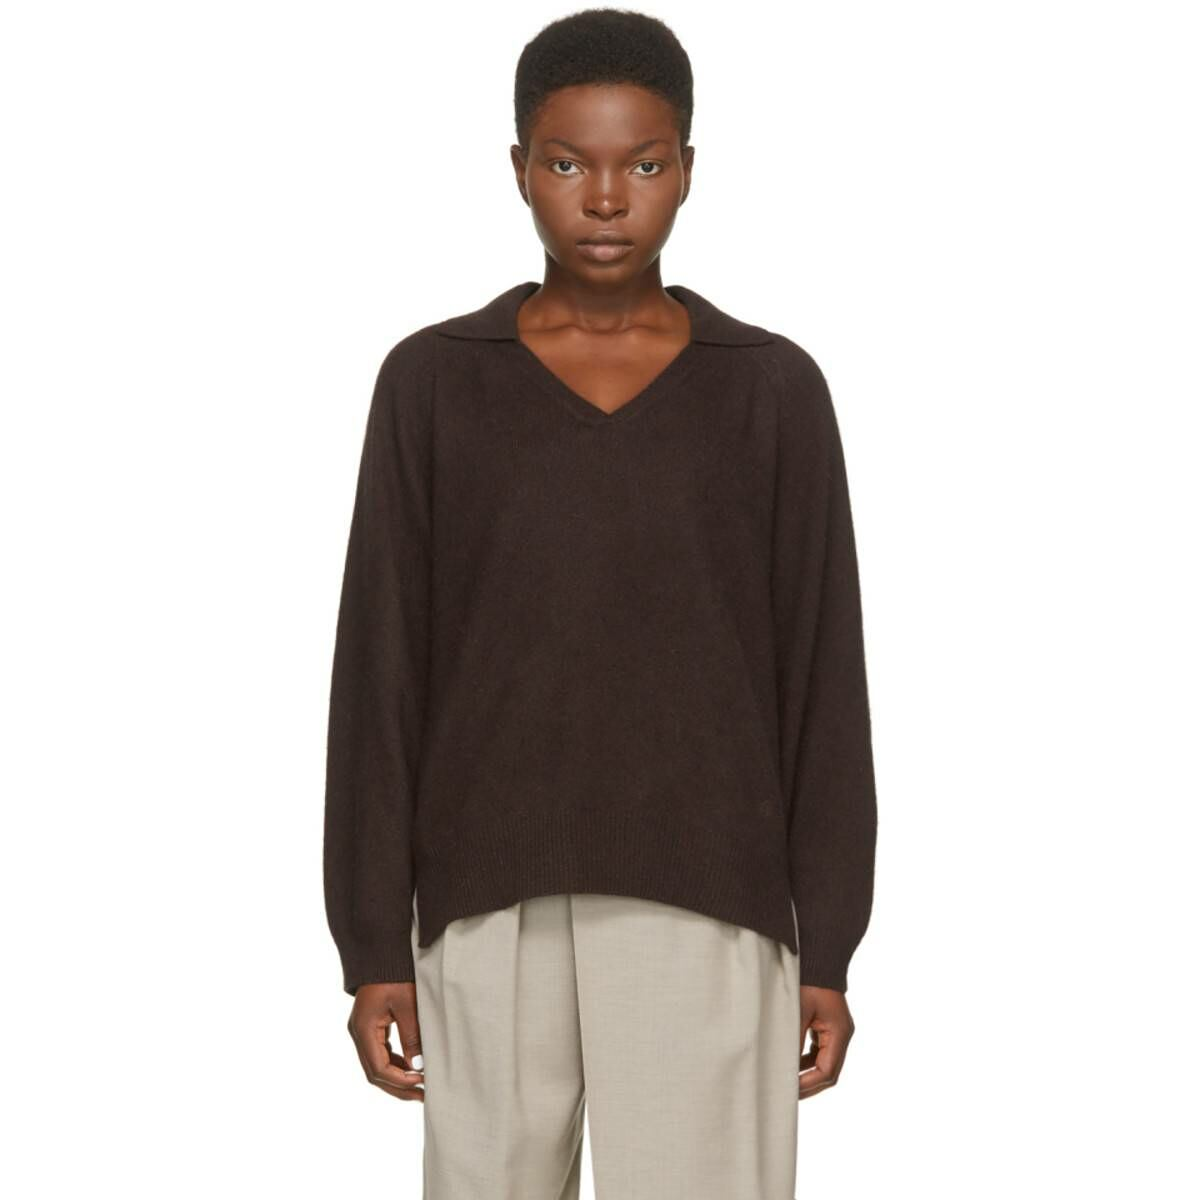 Loulou Studio Brown Wool Sperone Sweater Ssense USA WOMEN Women FASHION Womens KNITWEAR